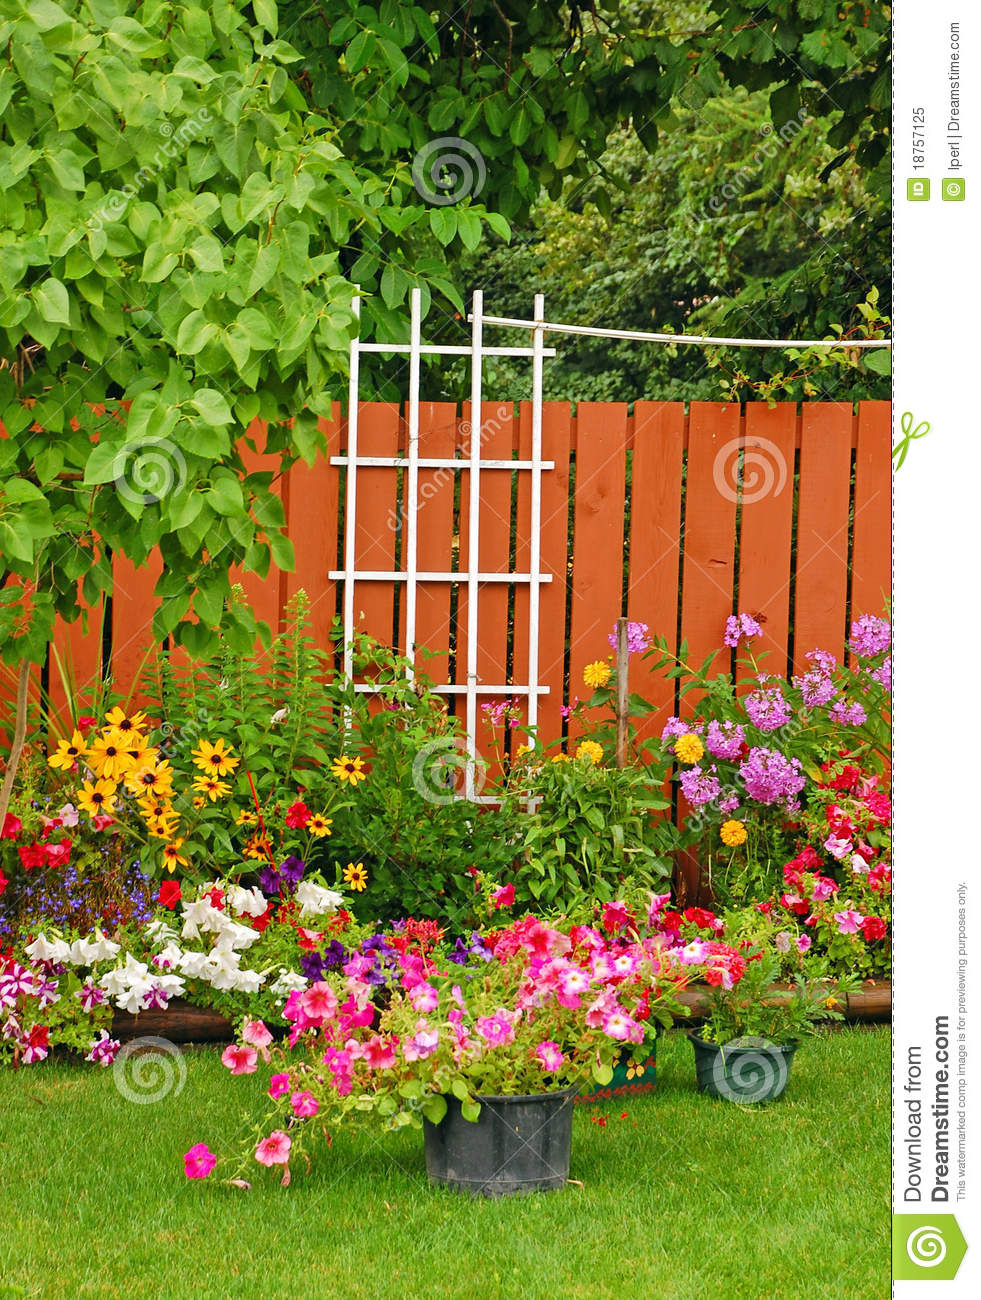 Colorful backyard garden stock image. Image of petals ...